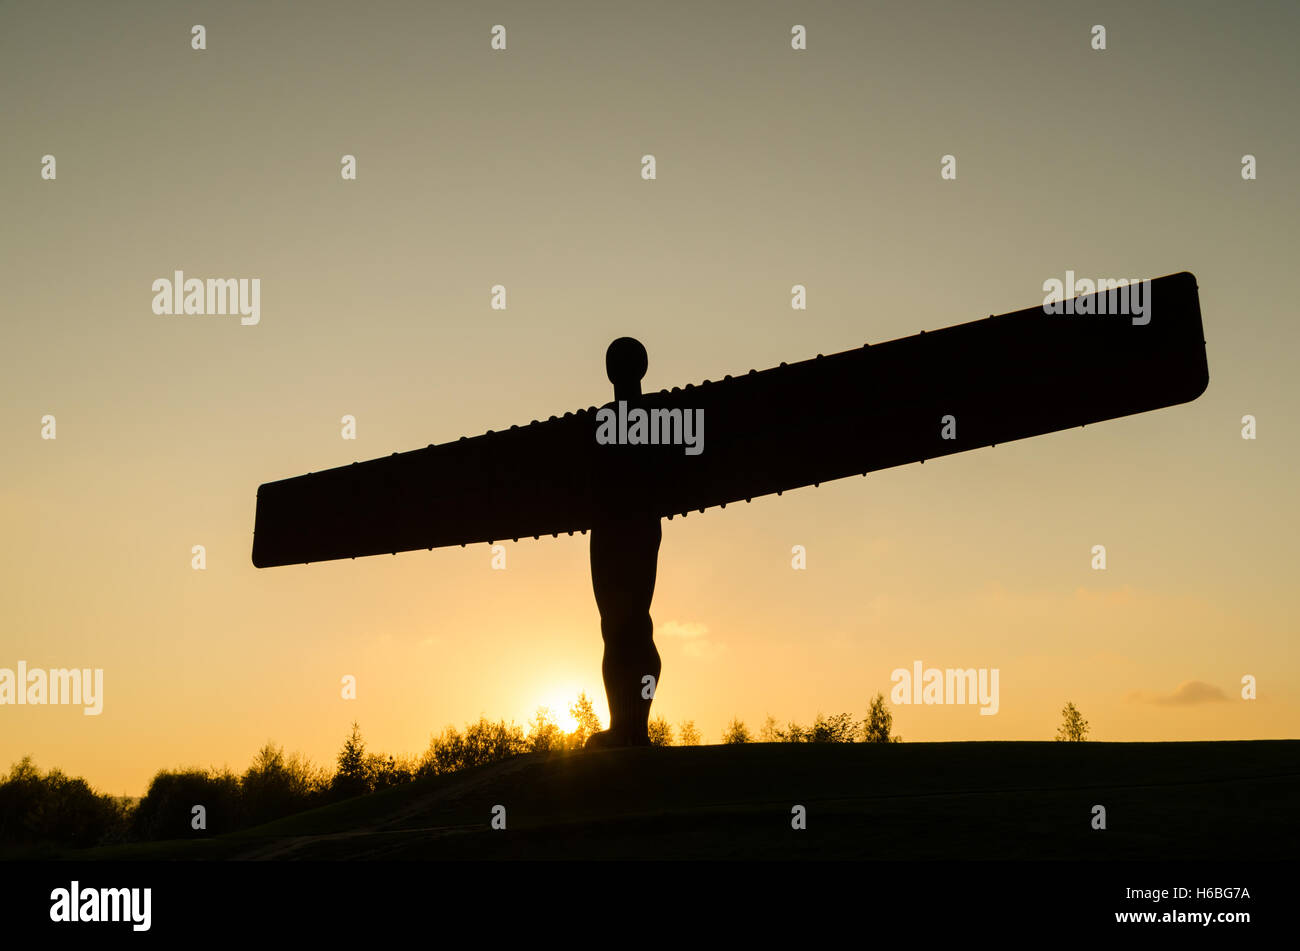 Sunset at The Angel of the North, Gateshead, England - Stock Image